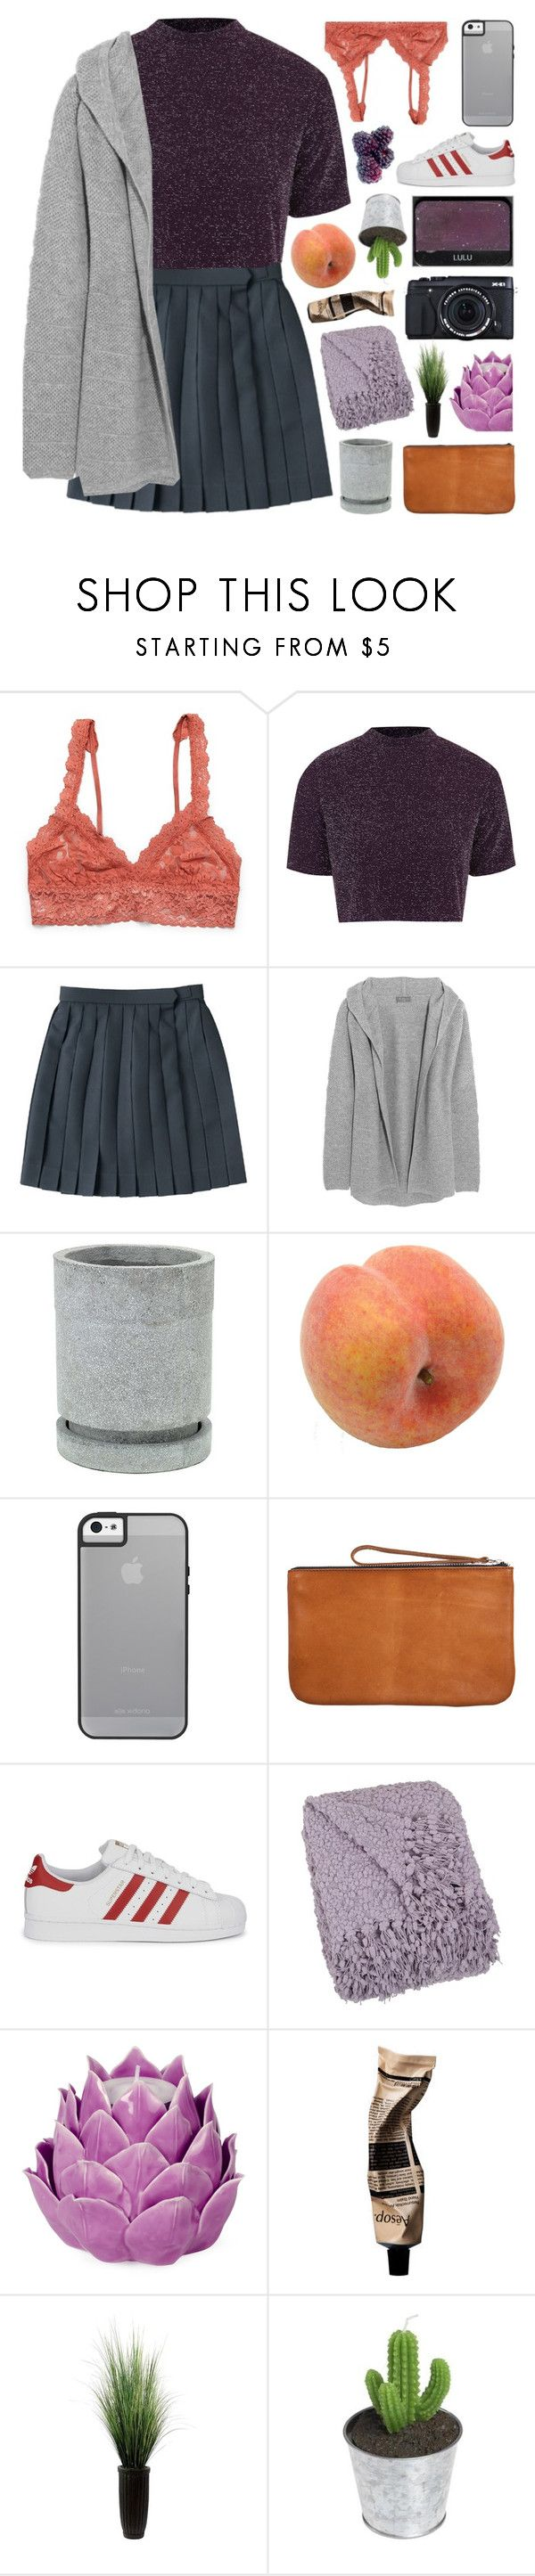 """THIS IS THE SONG FOR NO ONE ⚘"" by d0ntblink ❤ liked on Polyvore featuring Hanky Panky, Oh My Love, N.Peal, Pavilion Broadway, Fujifilm, Pieces, adidas Originals, NARS Cosmetics, Zara Home and Aromatique"